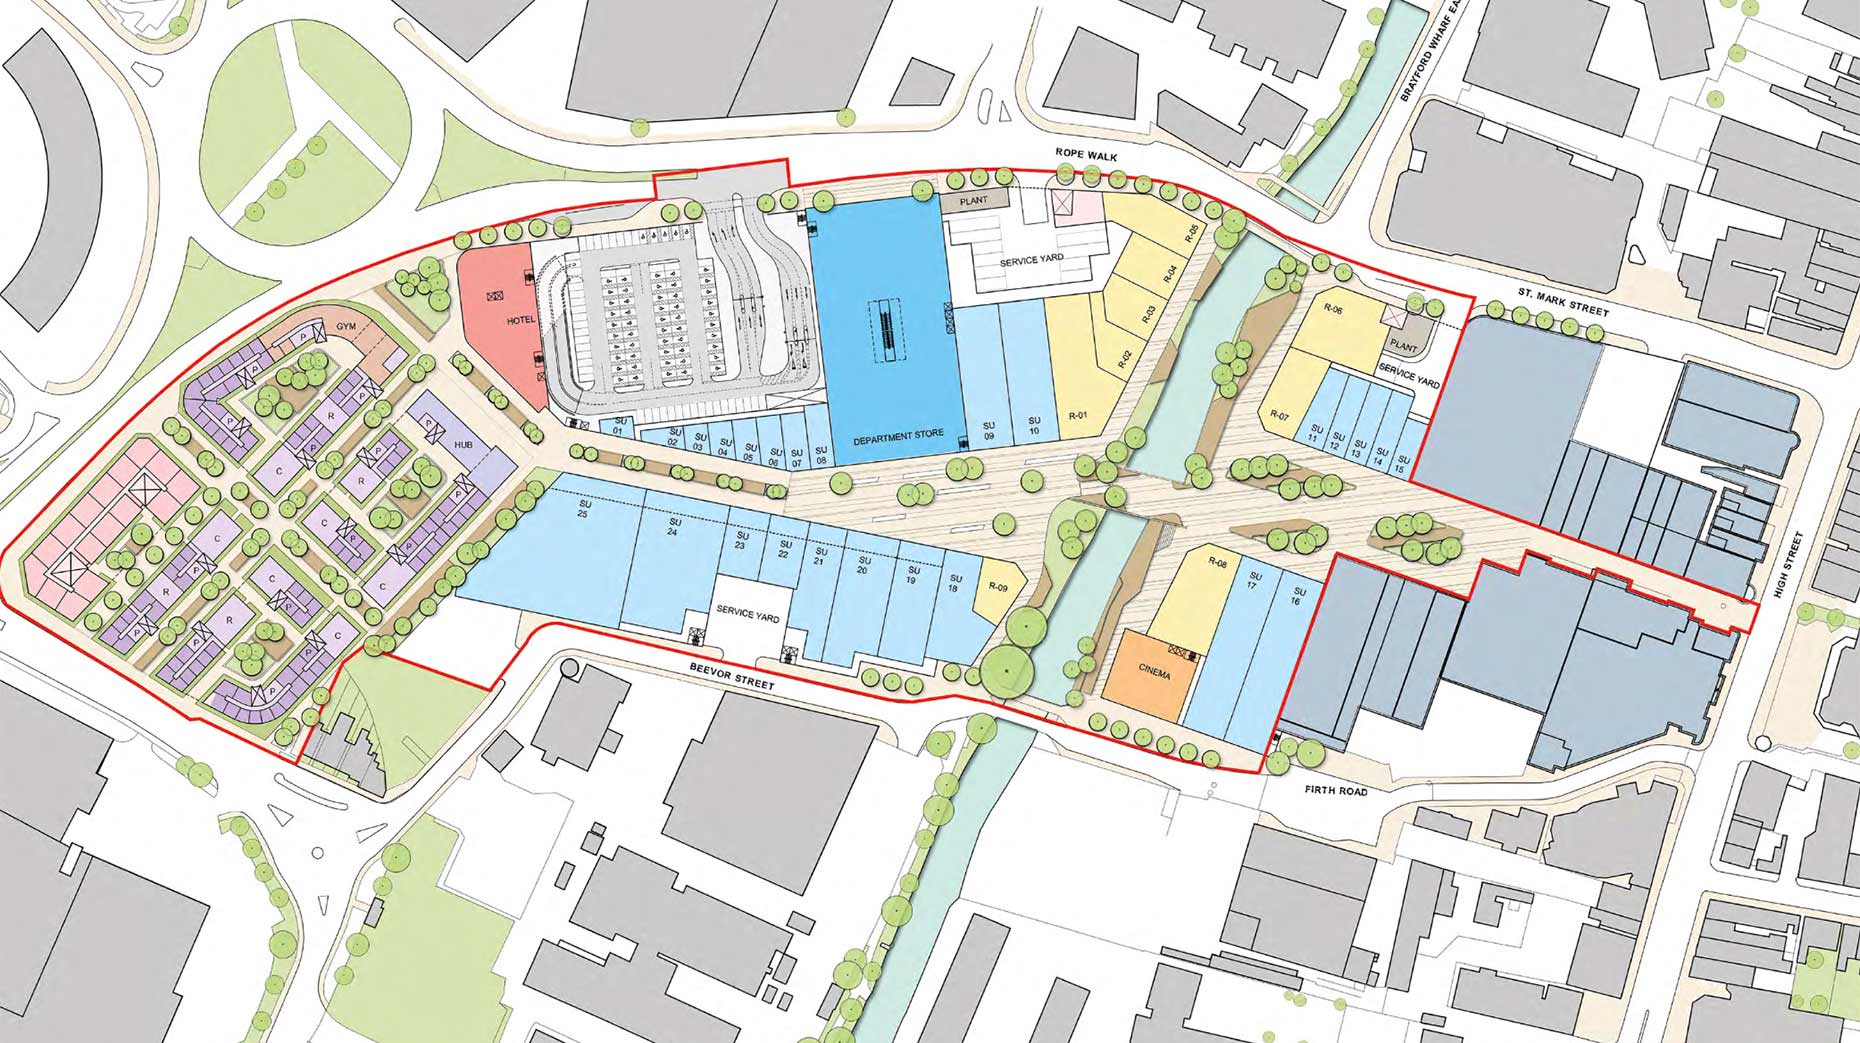 The St Marks retail park masterplan, including new shop, restaurants, a hotel and flats. (Click to enlarge)